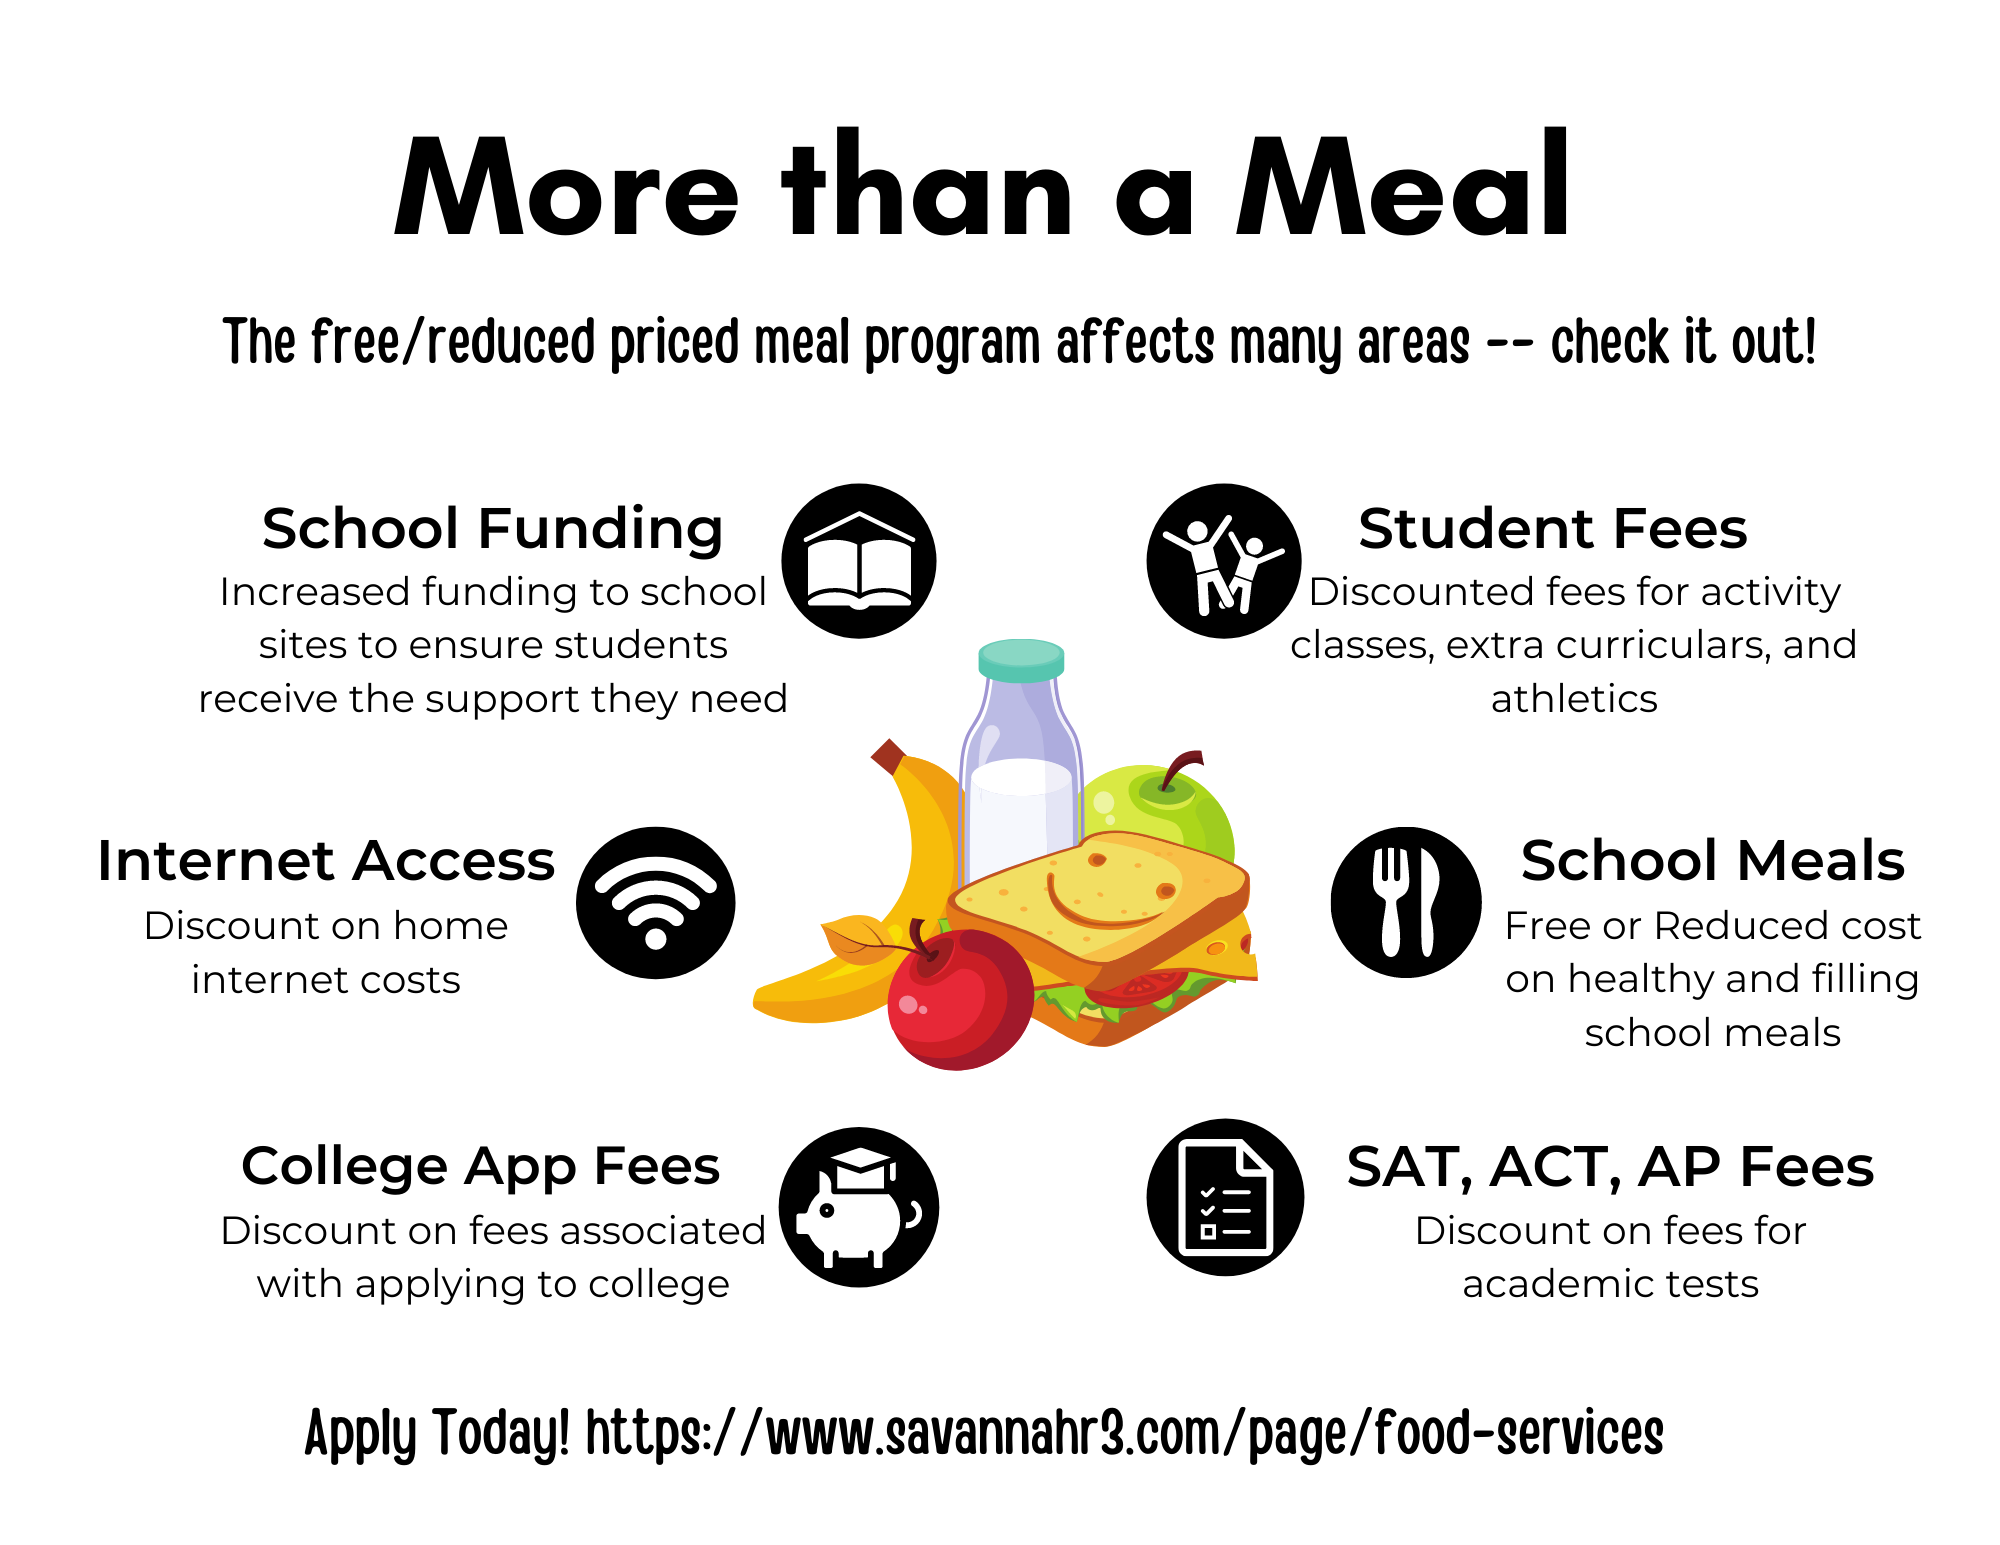 More than Just a Meal Infographic